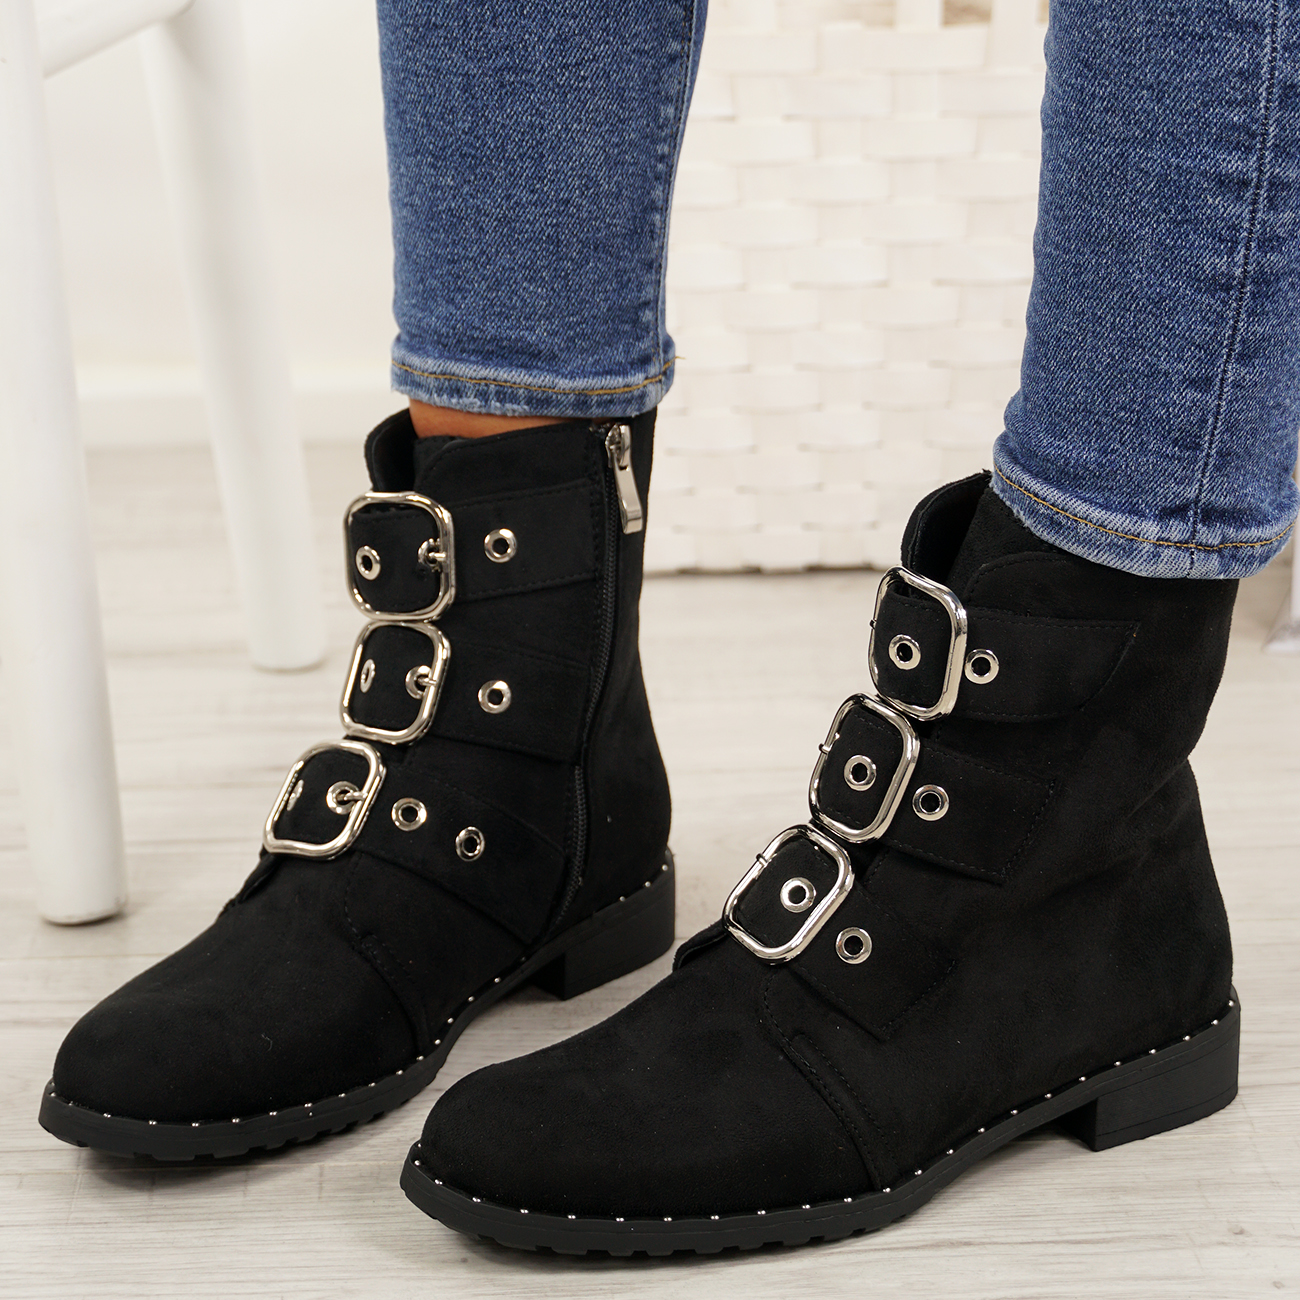 LADIES-WOMENS-BIKER-ANKLE-BOOTS-ZIP-STUDDED-LOW-HEEL-COMFY-SHOES-SIZES thumbnail 13